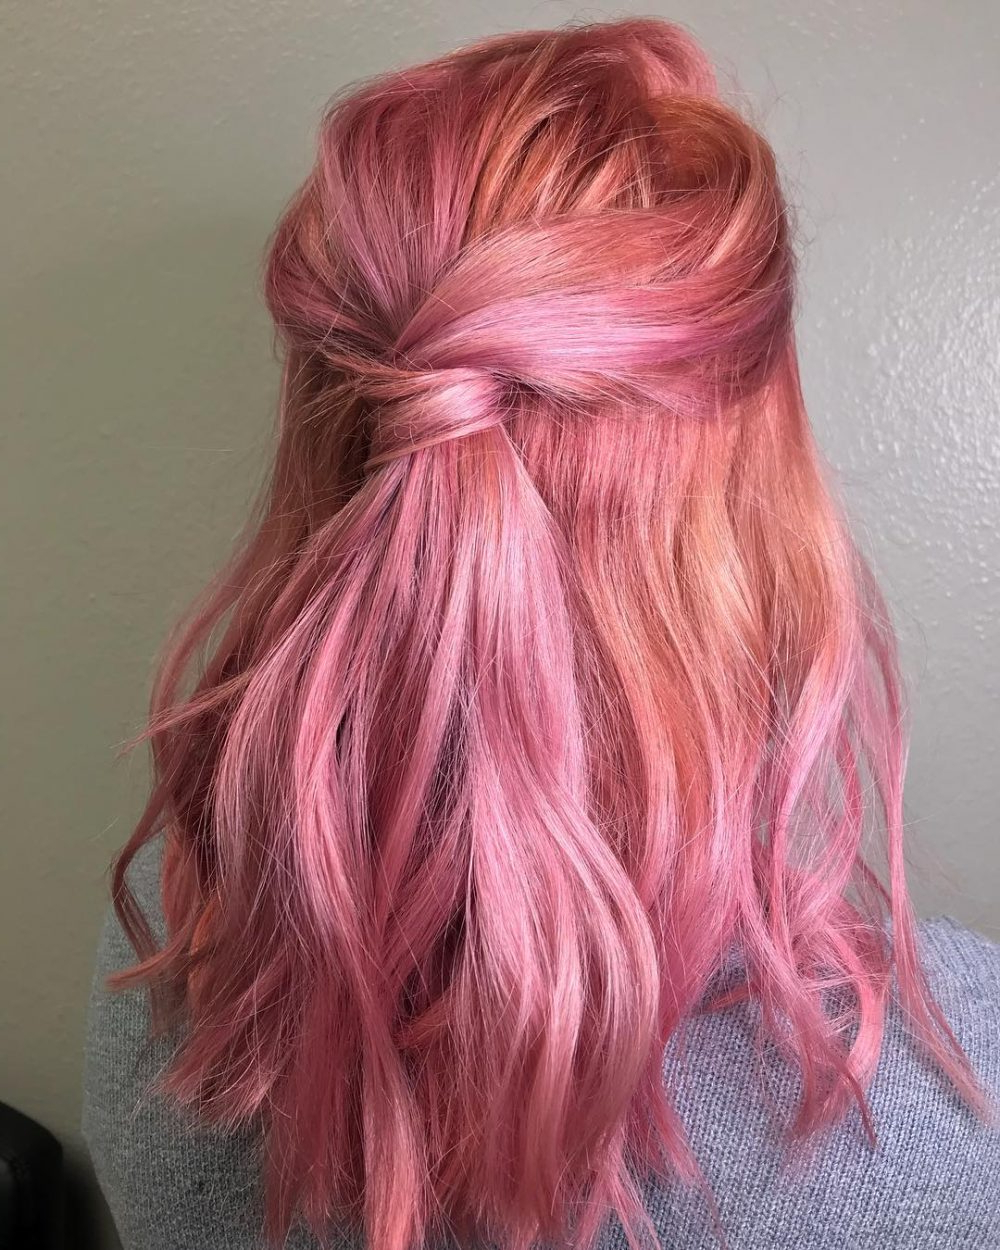 Preferred Pinks Medium Haircuts Intended For 28 Cute Hairstyles For Medium Length Hair (Popular For 2019) (View 15 of 20)